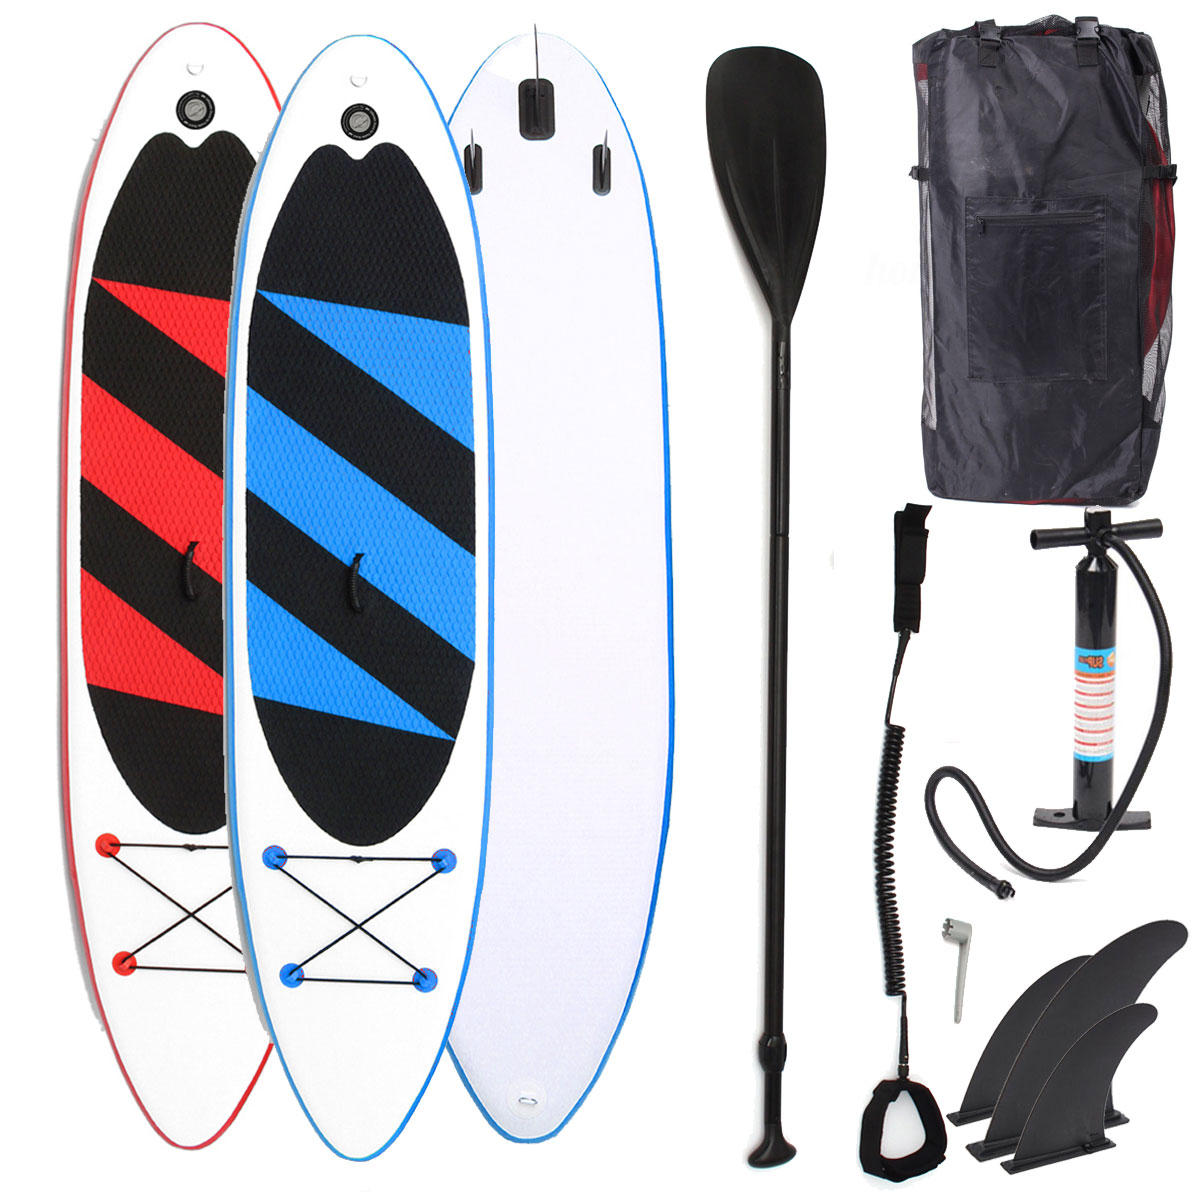 Outdoor 10.5ft Inflatable Surfboard Set Stand Up Adjustable Saddle Surf Boat Wave Ride Water Sports SUP Board